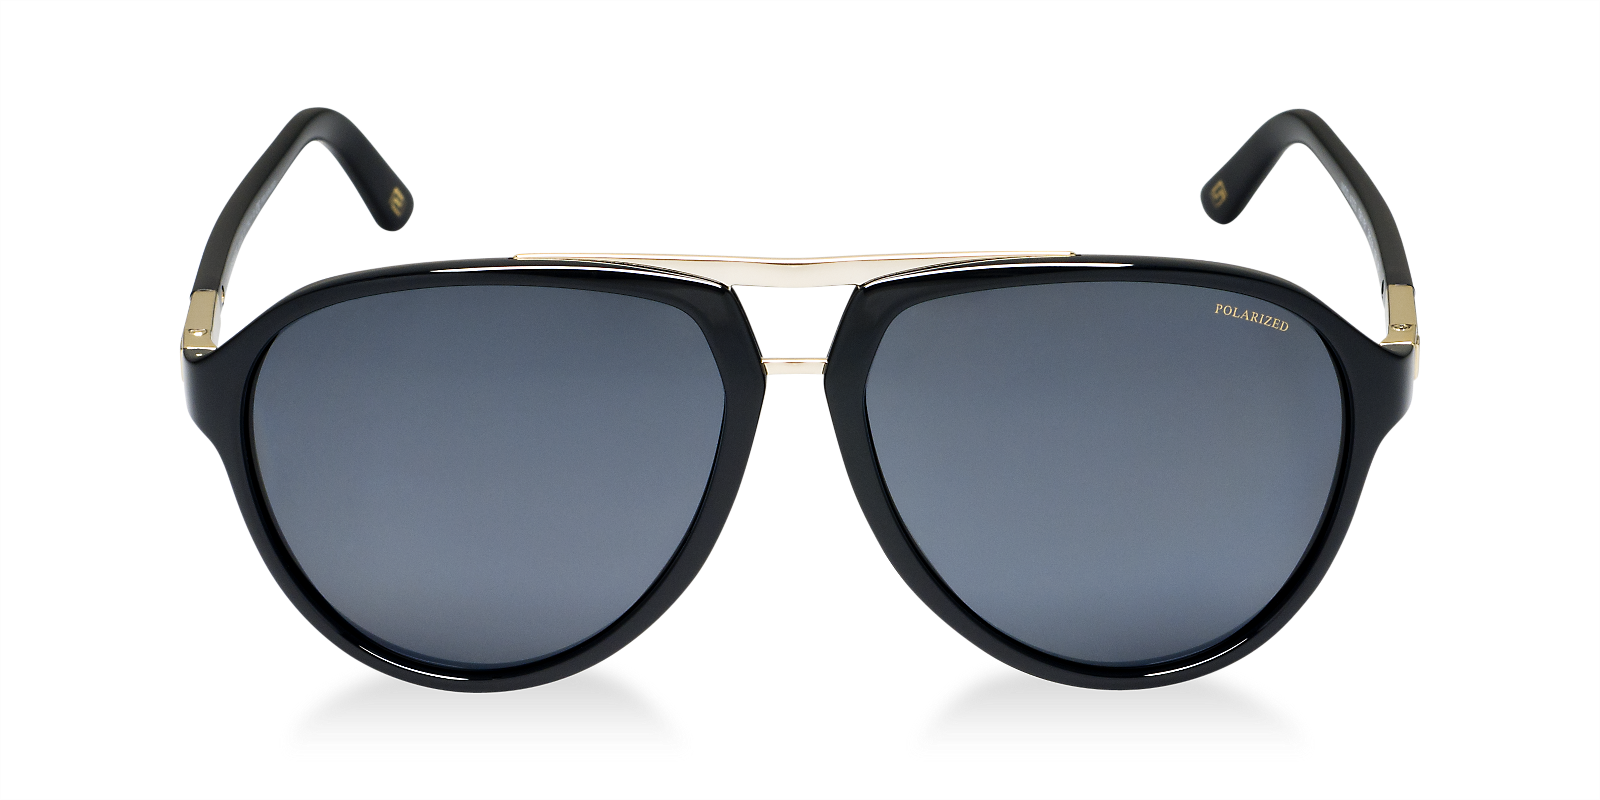 Gucci glasses png